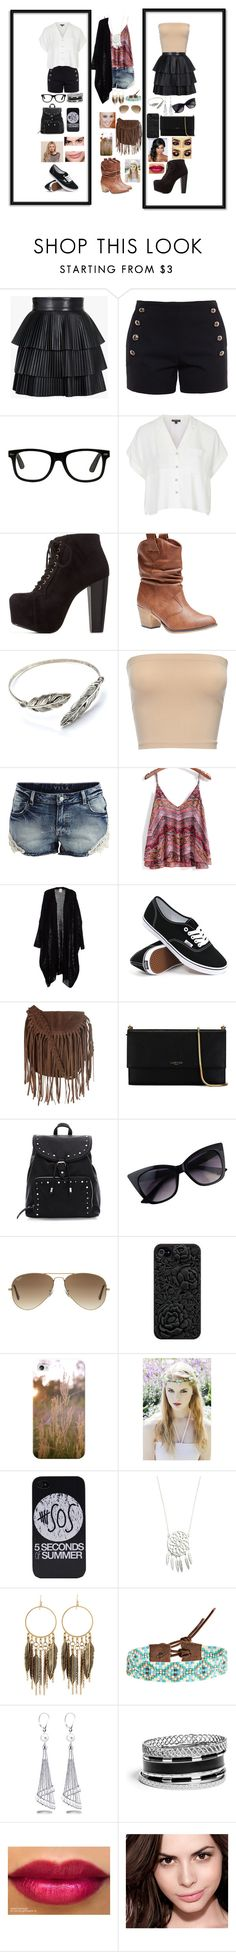 """""""fashion"""" by atreides16 ❤ liked on Polyvore featuring Balmain, Chloé, Topshop, Charlotte Russe, Wet Seal, VILA, Vans, Glamorous, Lanvin and Ray-Ban"""